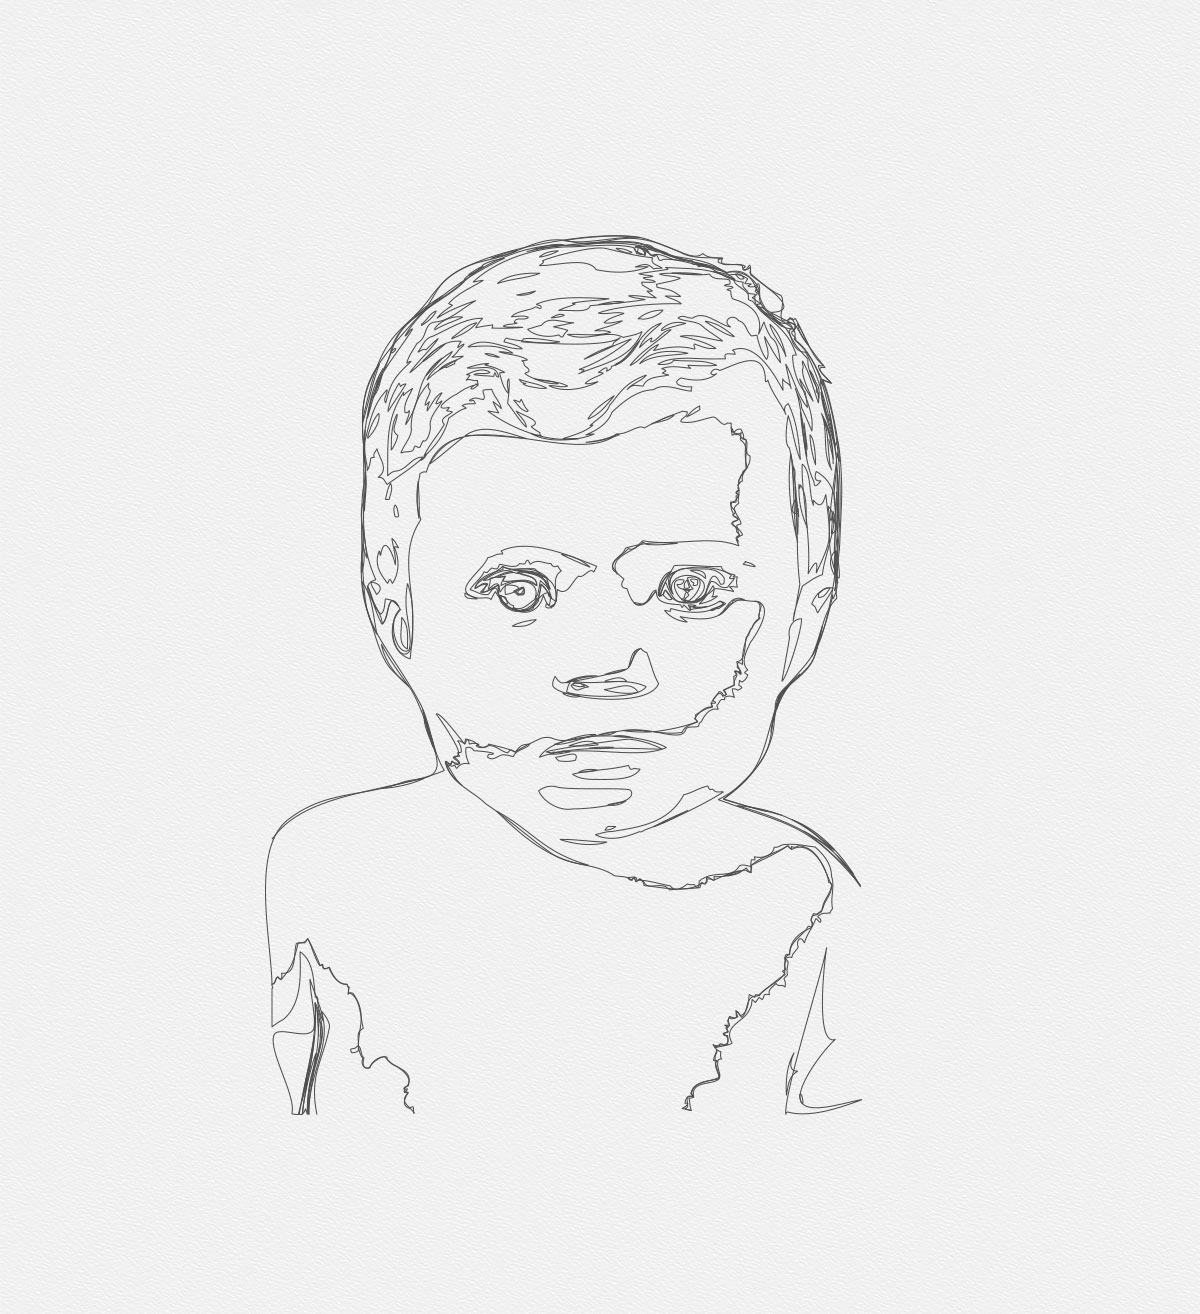 The baby Lea DrawBot 001 1 - 2019 - The baby. Lea. V1